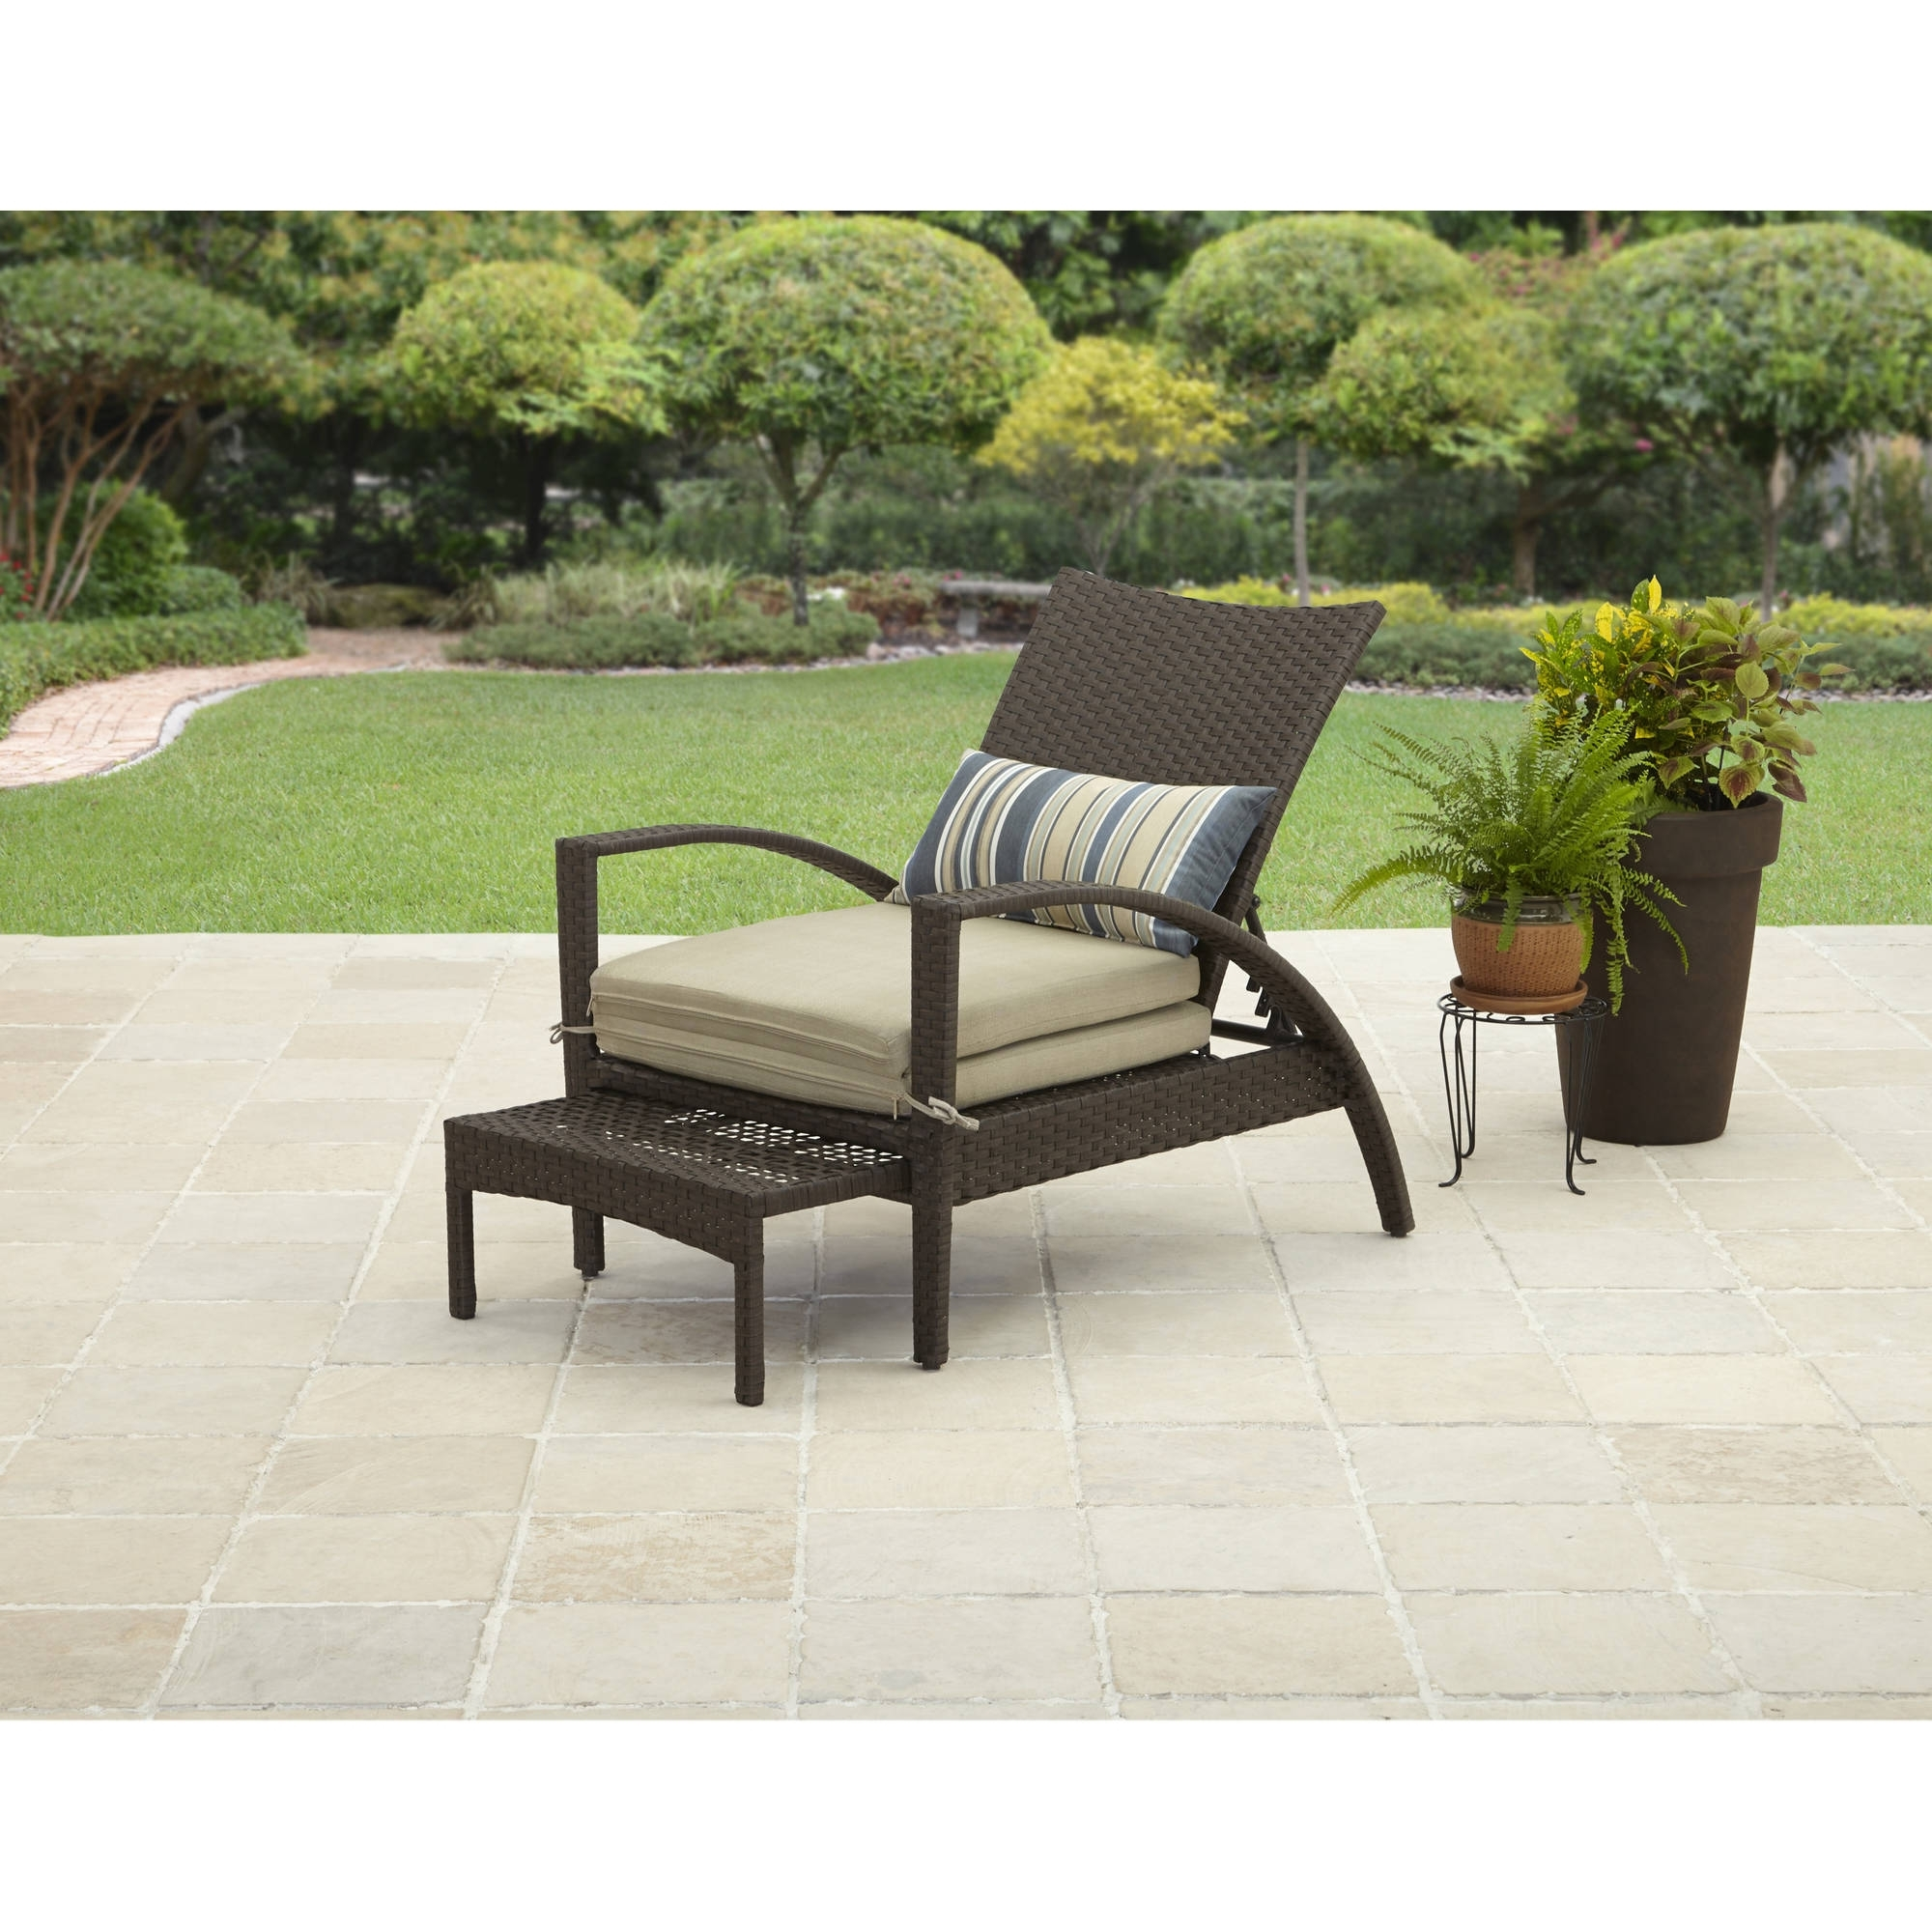 Chaise Lounge Chairs At Walmart Regarding Latest Better Homes And Gardens Avila Beach Pull Out Chaise – Walmart (View 6 of 15)